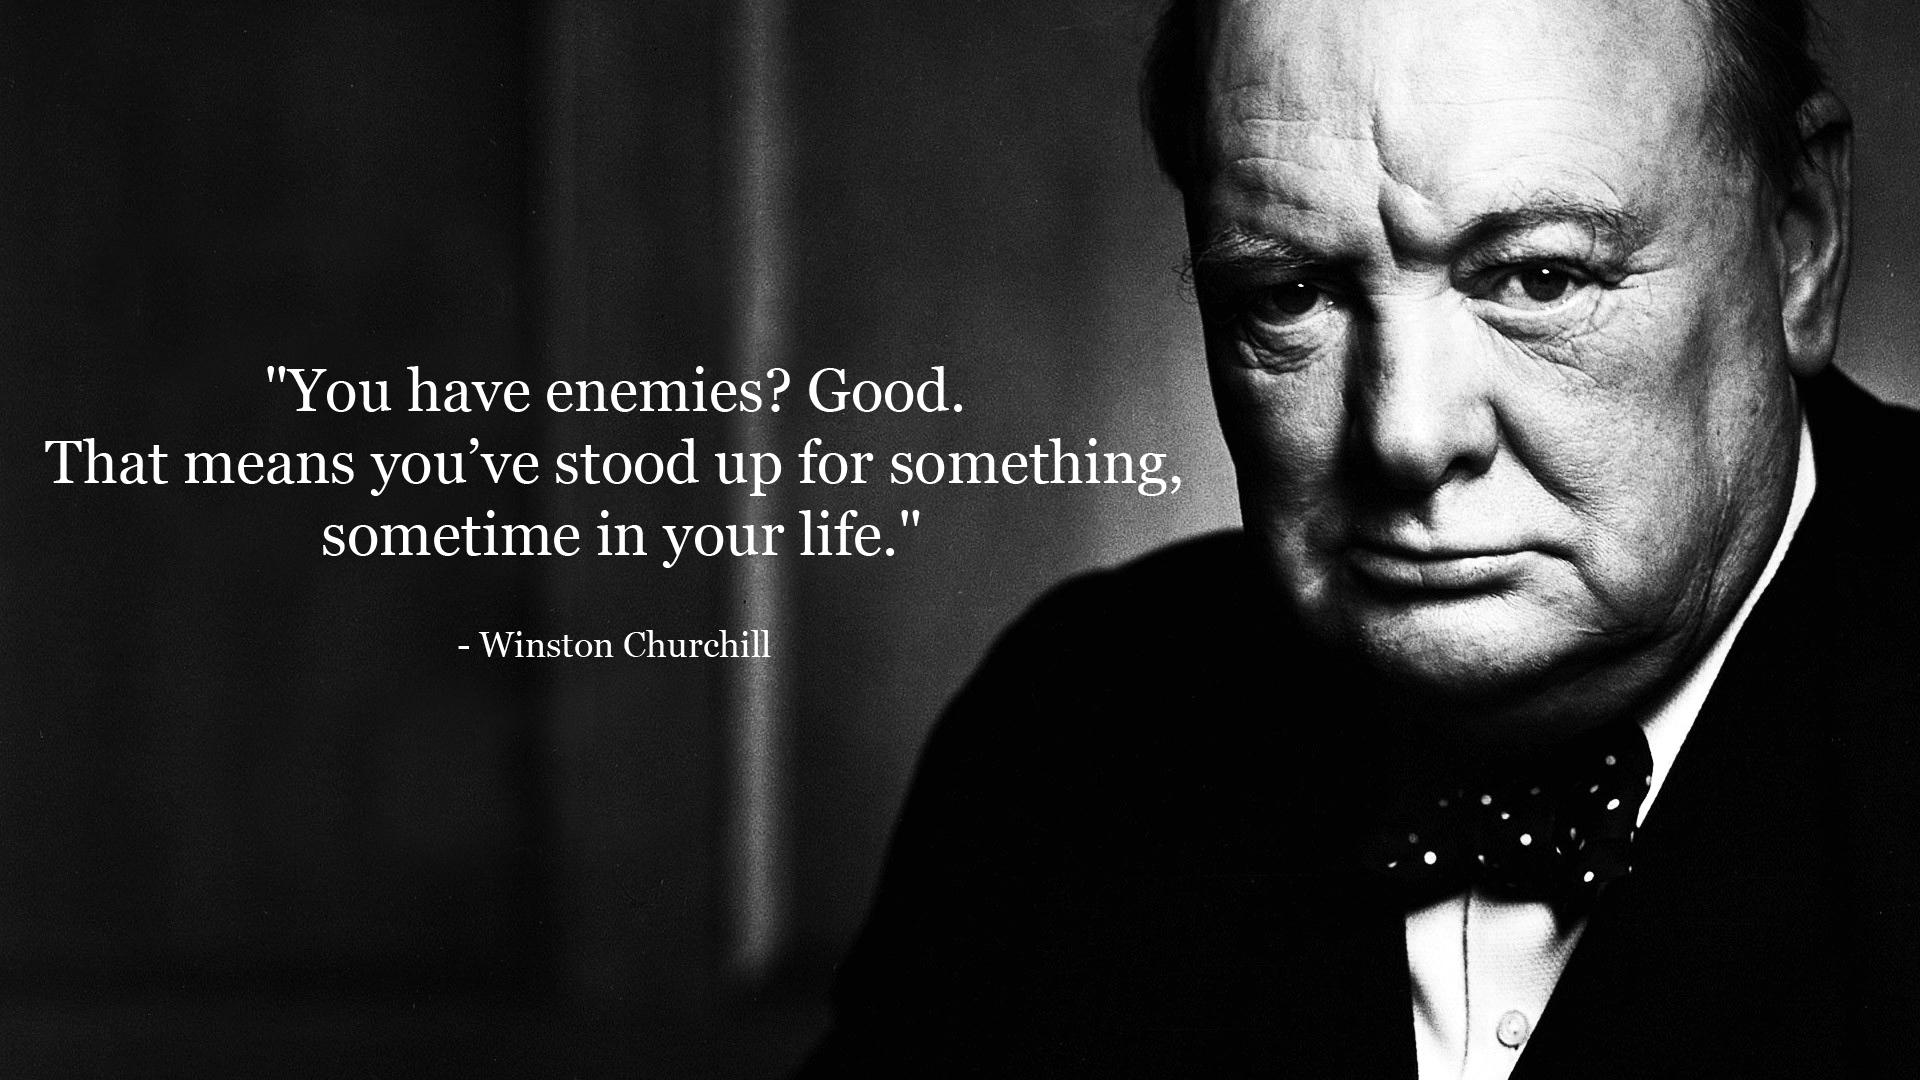 You Have Enemies Good Winston Churchill